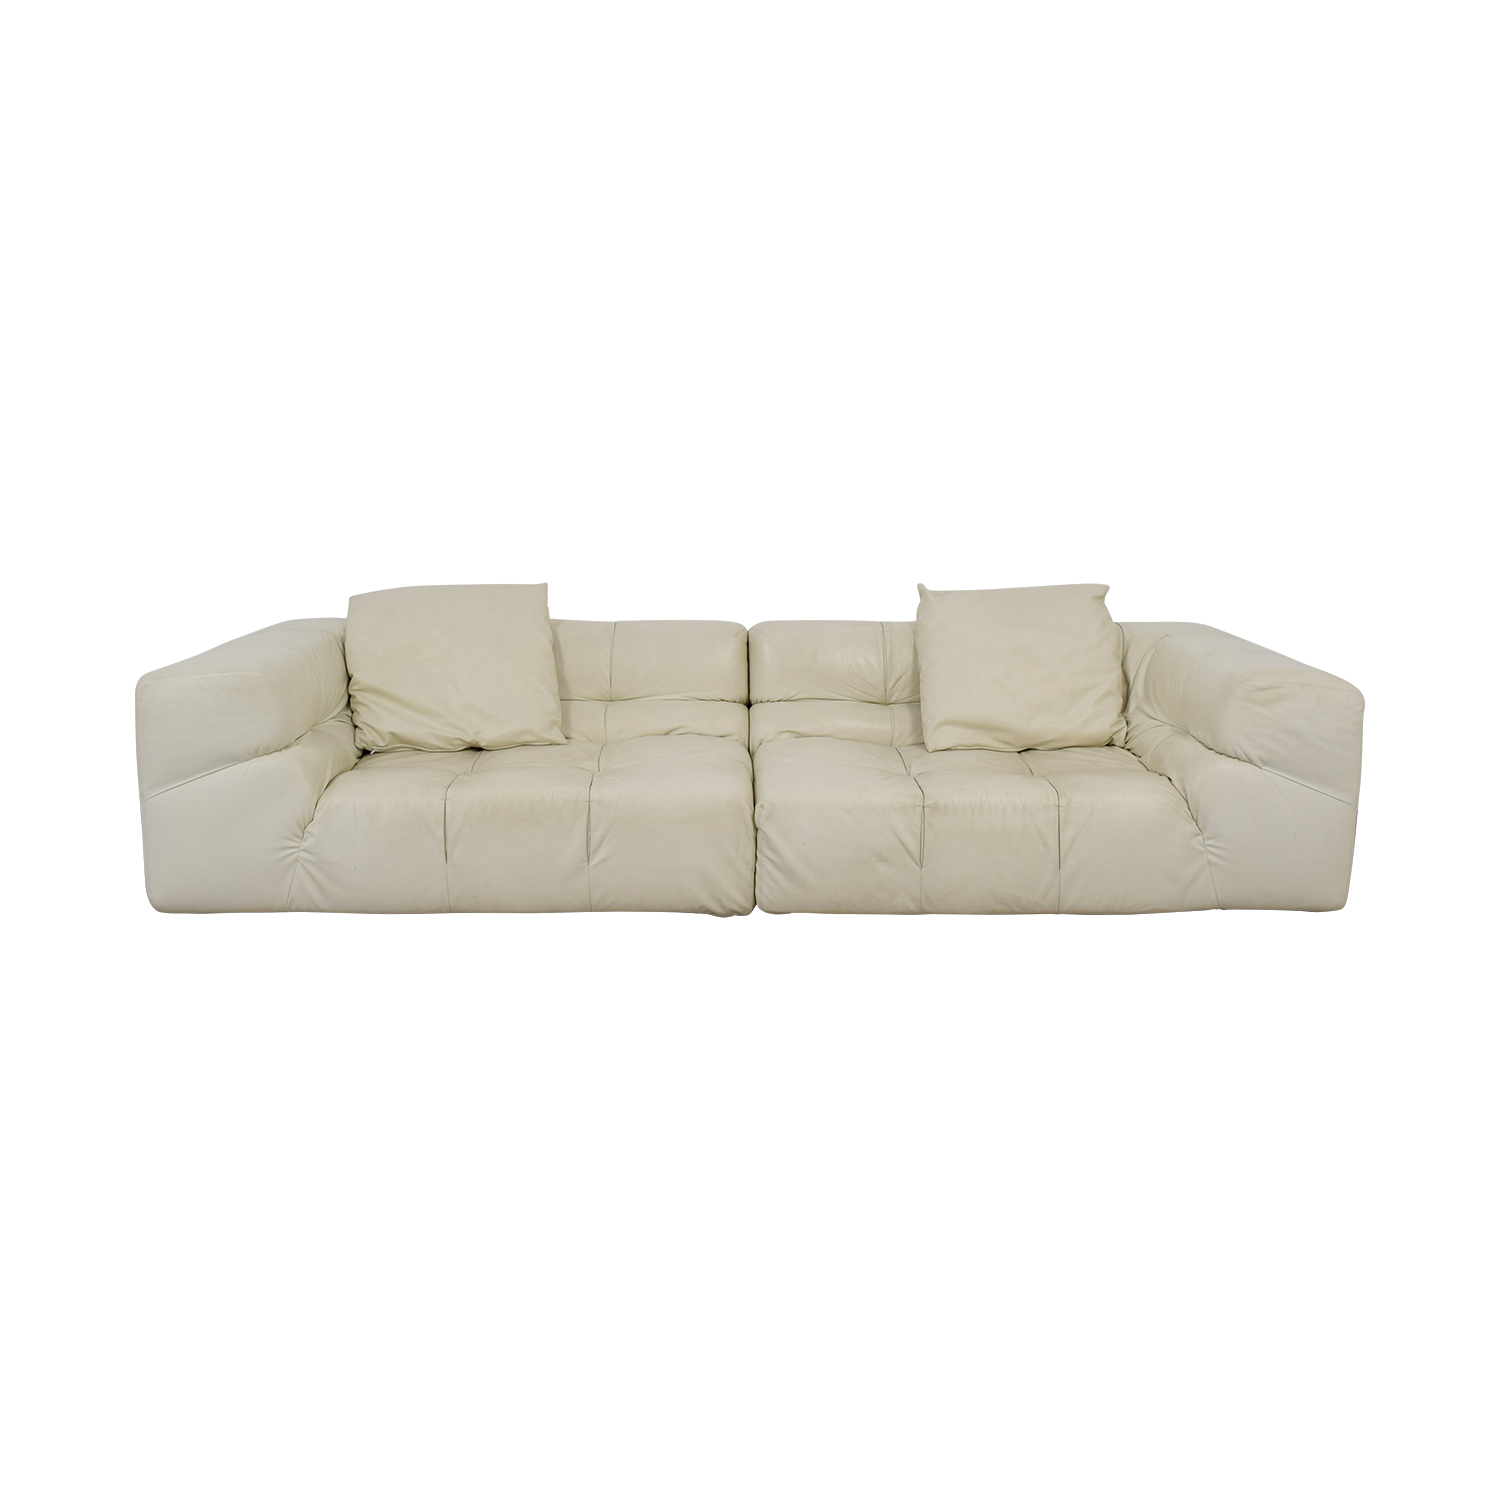 Ligne Roset Online 52 Off Ligne Roset Ligne Roset White Tufted Leather Couch Sofas